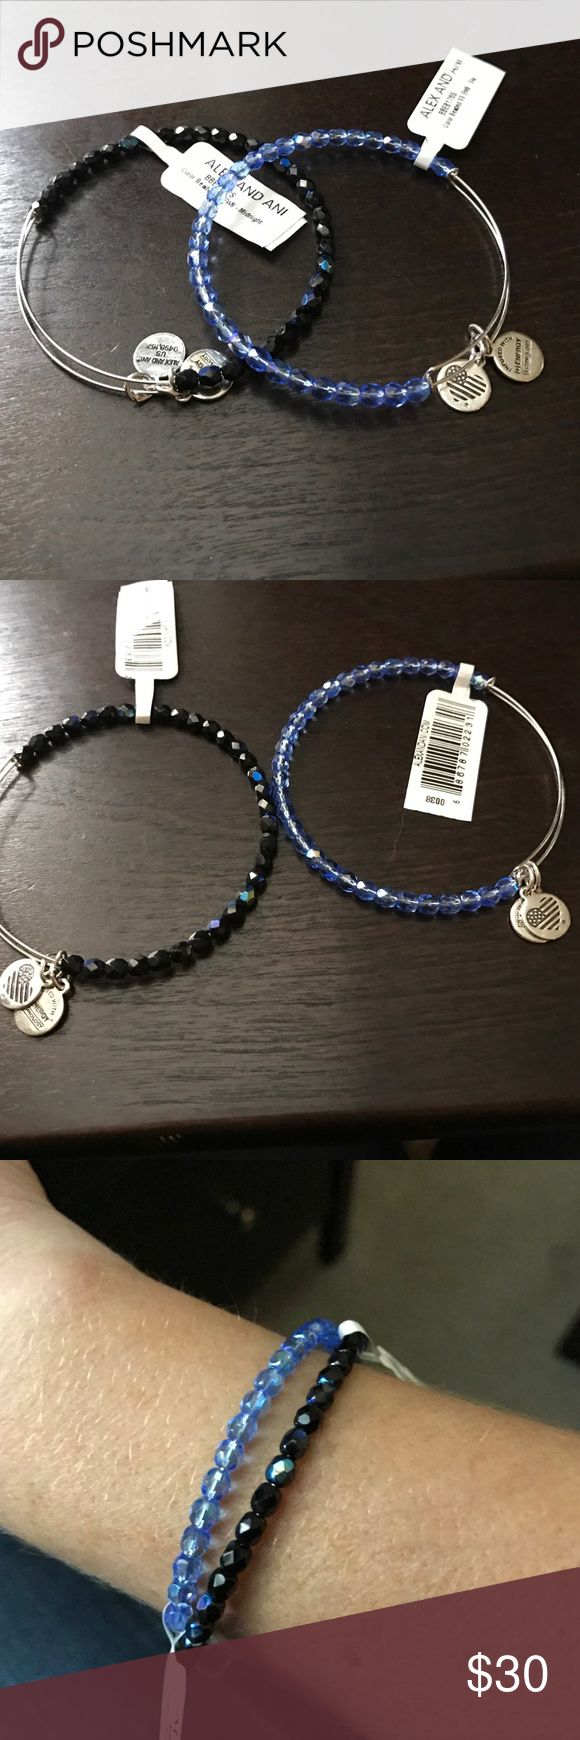 Alex and Ani set of beaded bracelets Alex and Ani silver set of two beaded bracelets sky, which is a sparkling blue and Midnight, which is a sparkling blue and black. Cute set. New with retail tags Alex & Ani Jewelry Bracelets